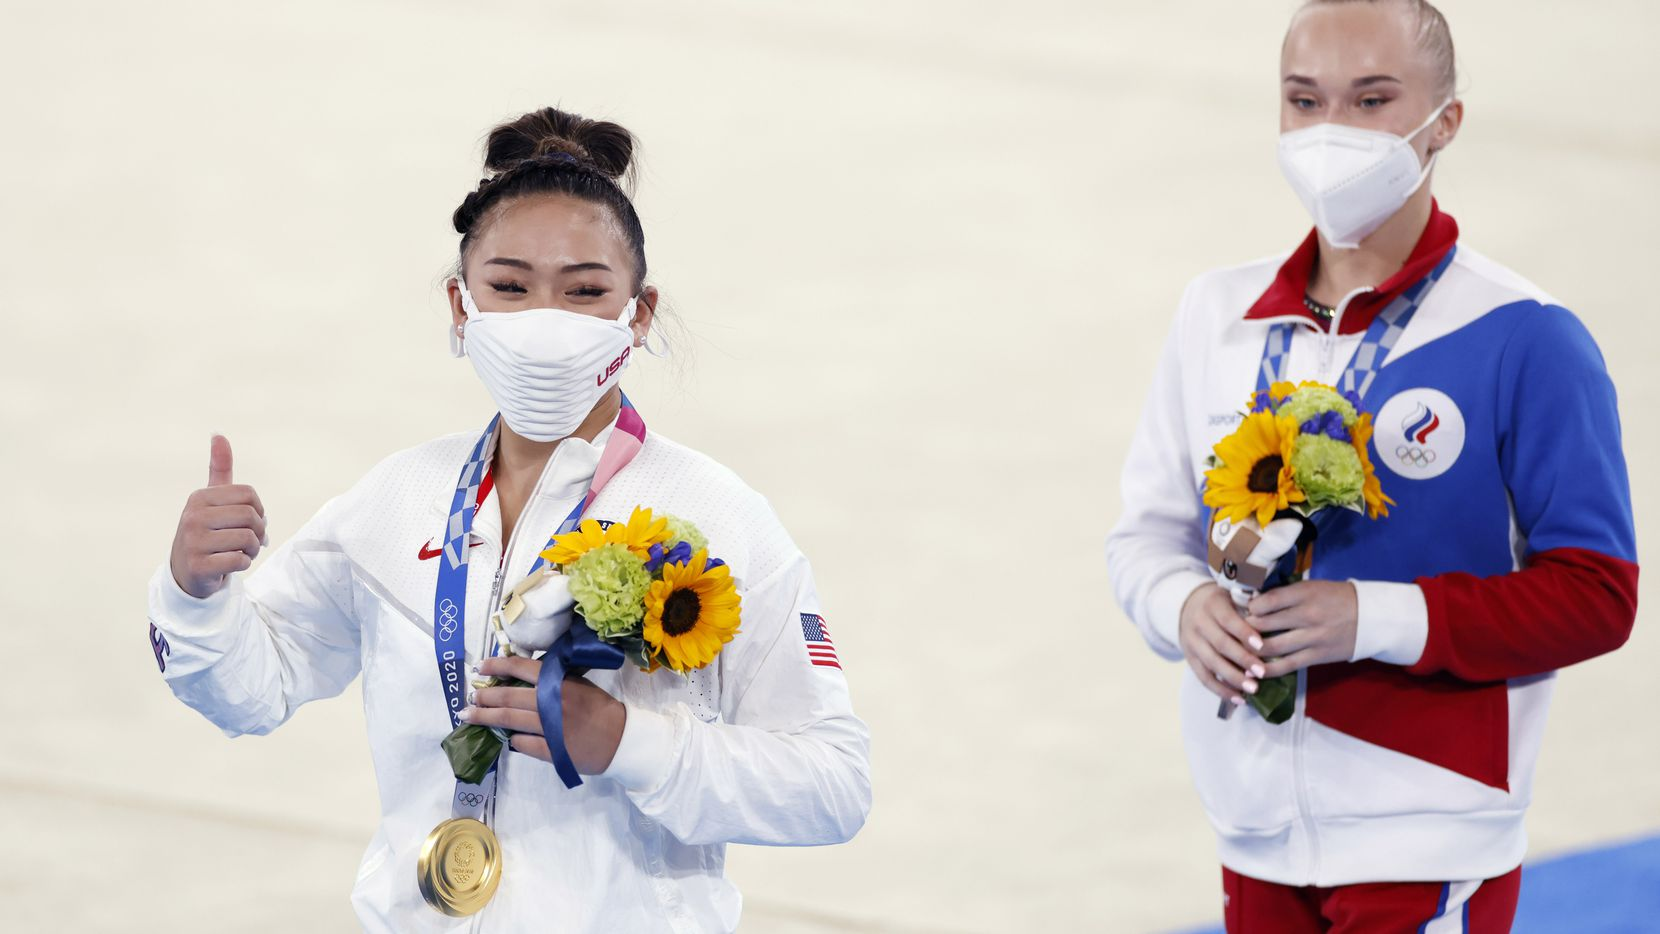 Gold medal winner USA's Sunisa Lee, and bronze medal winner ROC's Angelina Melnikova walk the stage after receiving their medals in the women's all-around final at the postponed 2020 Tokyo Olympics at Ariake Gymnastics Centre, on Thursday, July 29, 2021, in Tokyo, Japan. (Vernon Bryant/The Dallas Morning News)